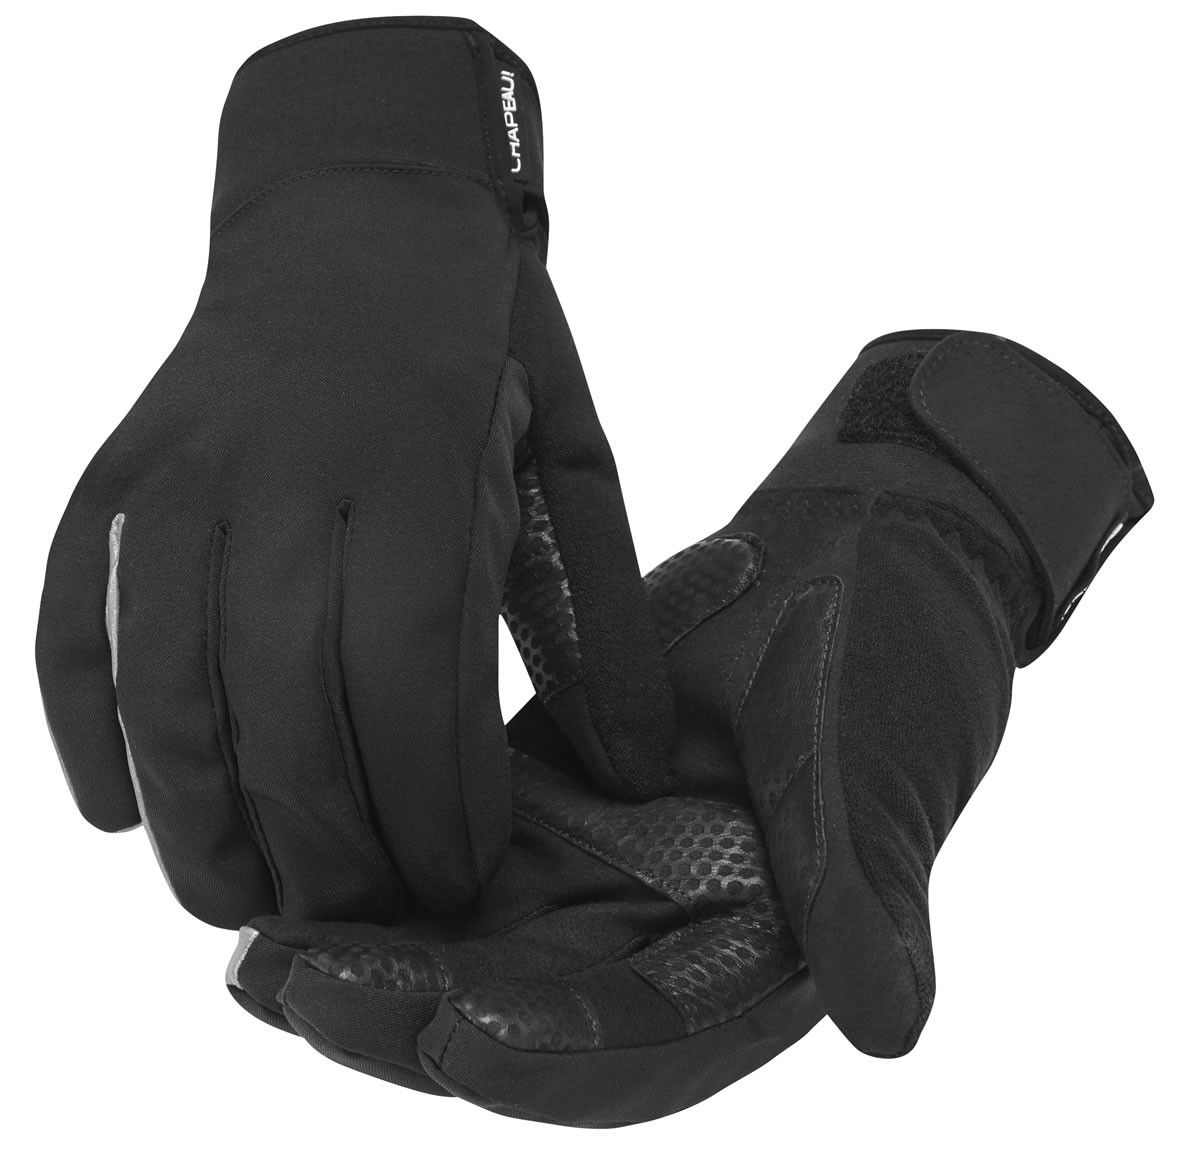 Winter Cycling Gloves Black Winter Cycling Cycling Gloves Gloves Winter [ 1153 x 1200 Pixel ]